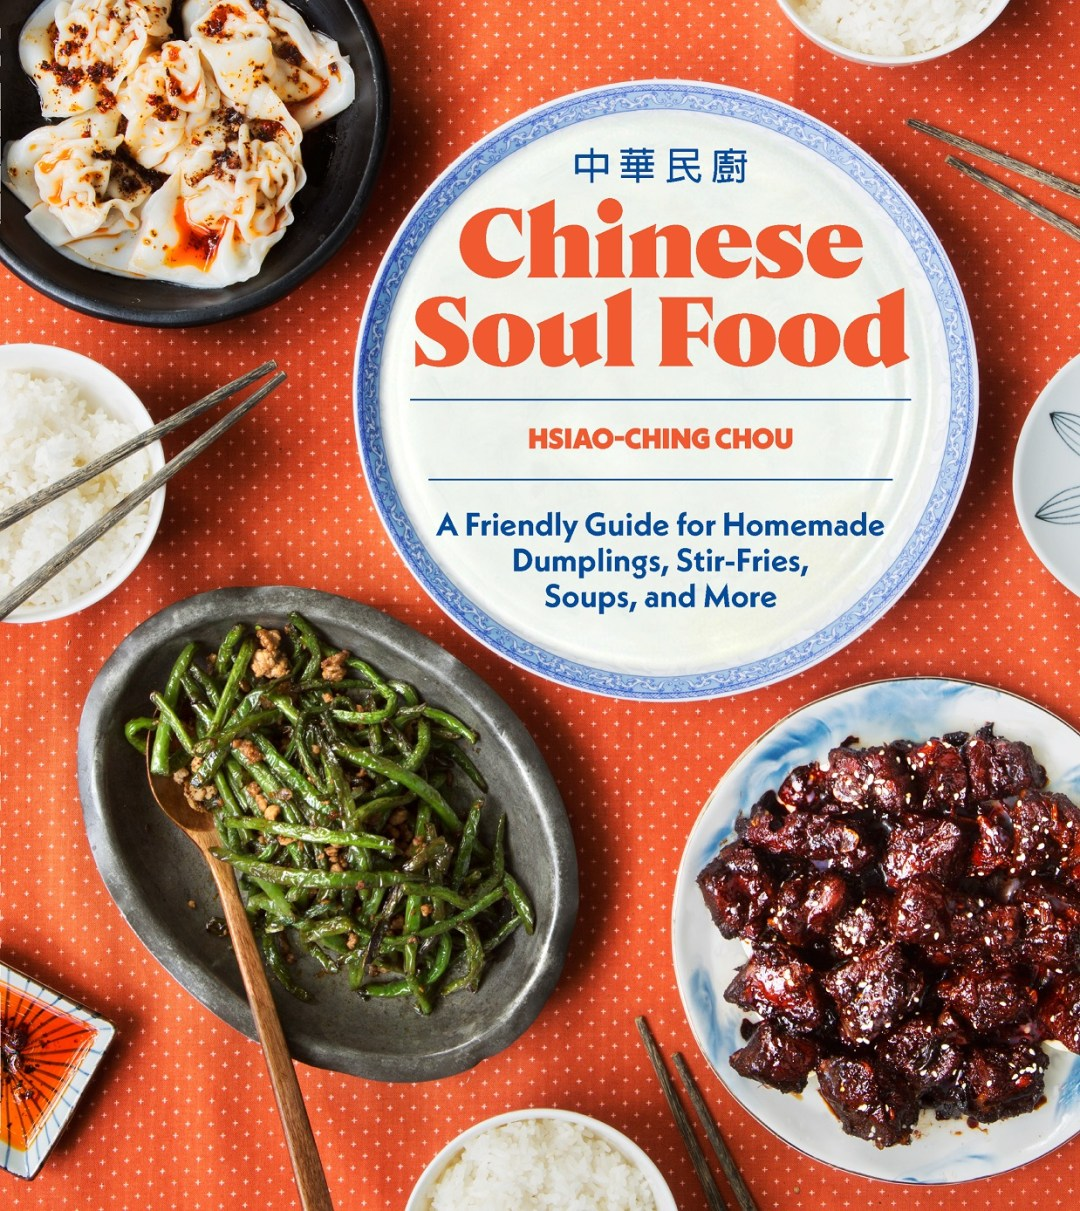 Chinese Soul Food book cover